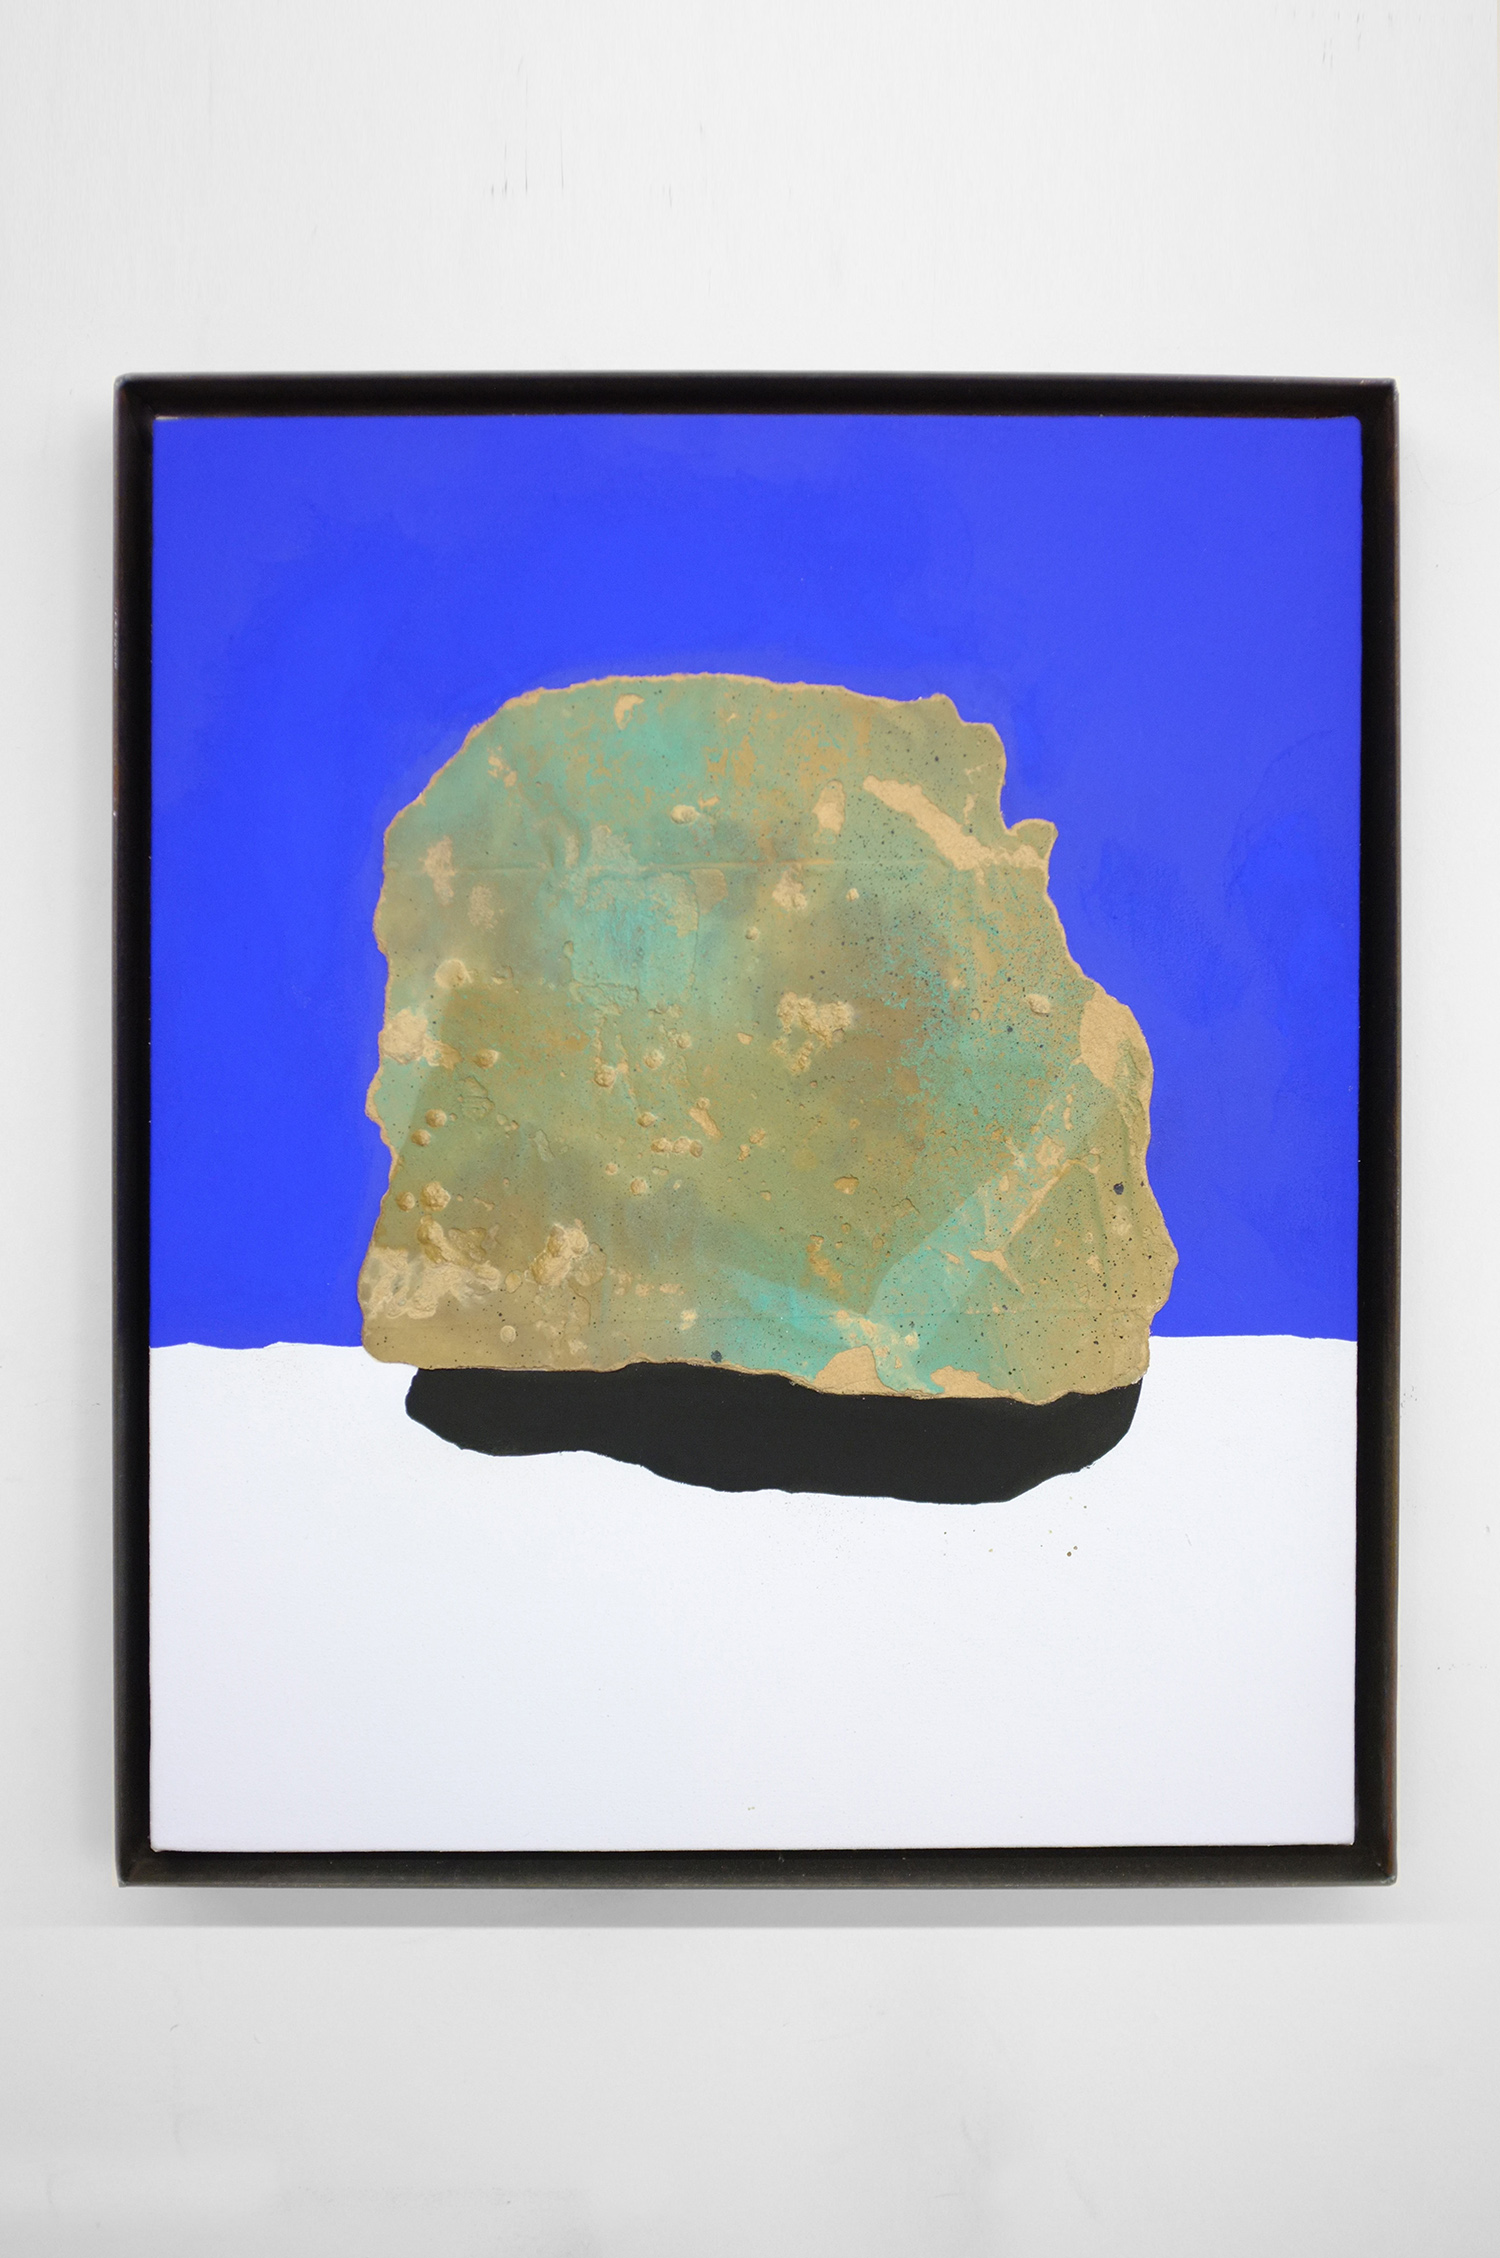 ROCK STUDY (BABY BROTHER)  2017  25 X 21 INCHES  CASEIN, ACRYLIC AND GROUT ON CANVAS OVER PANEL IN STEEL FRAME